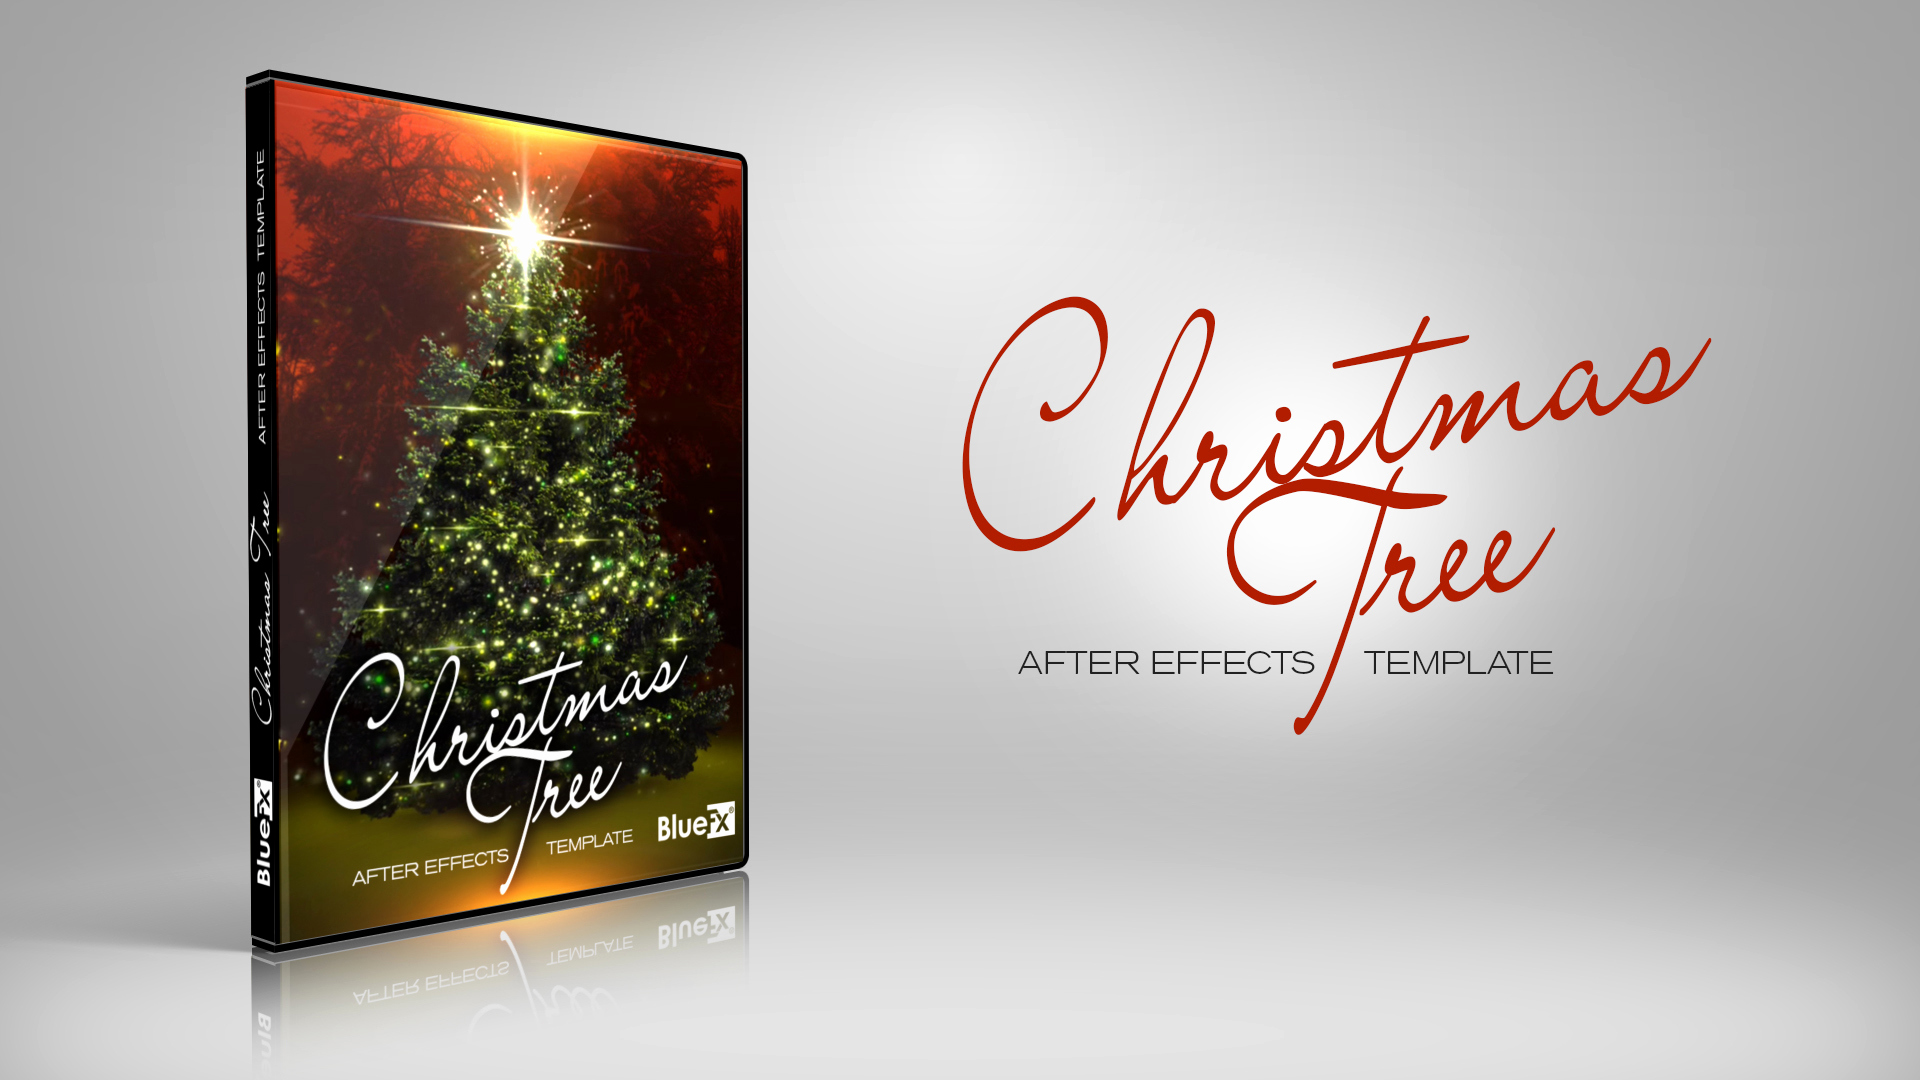 After Effects Free Templates Inspirational Christmas Tree after Effects Template